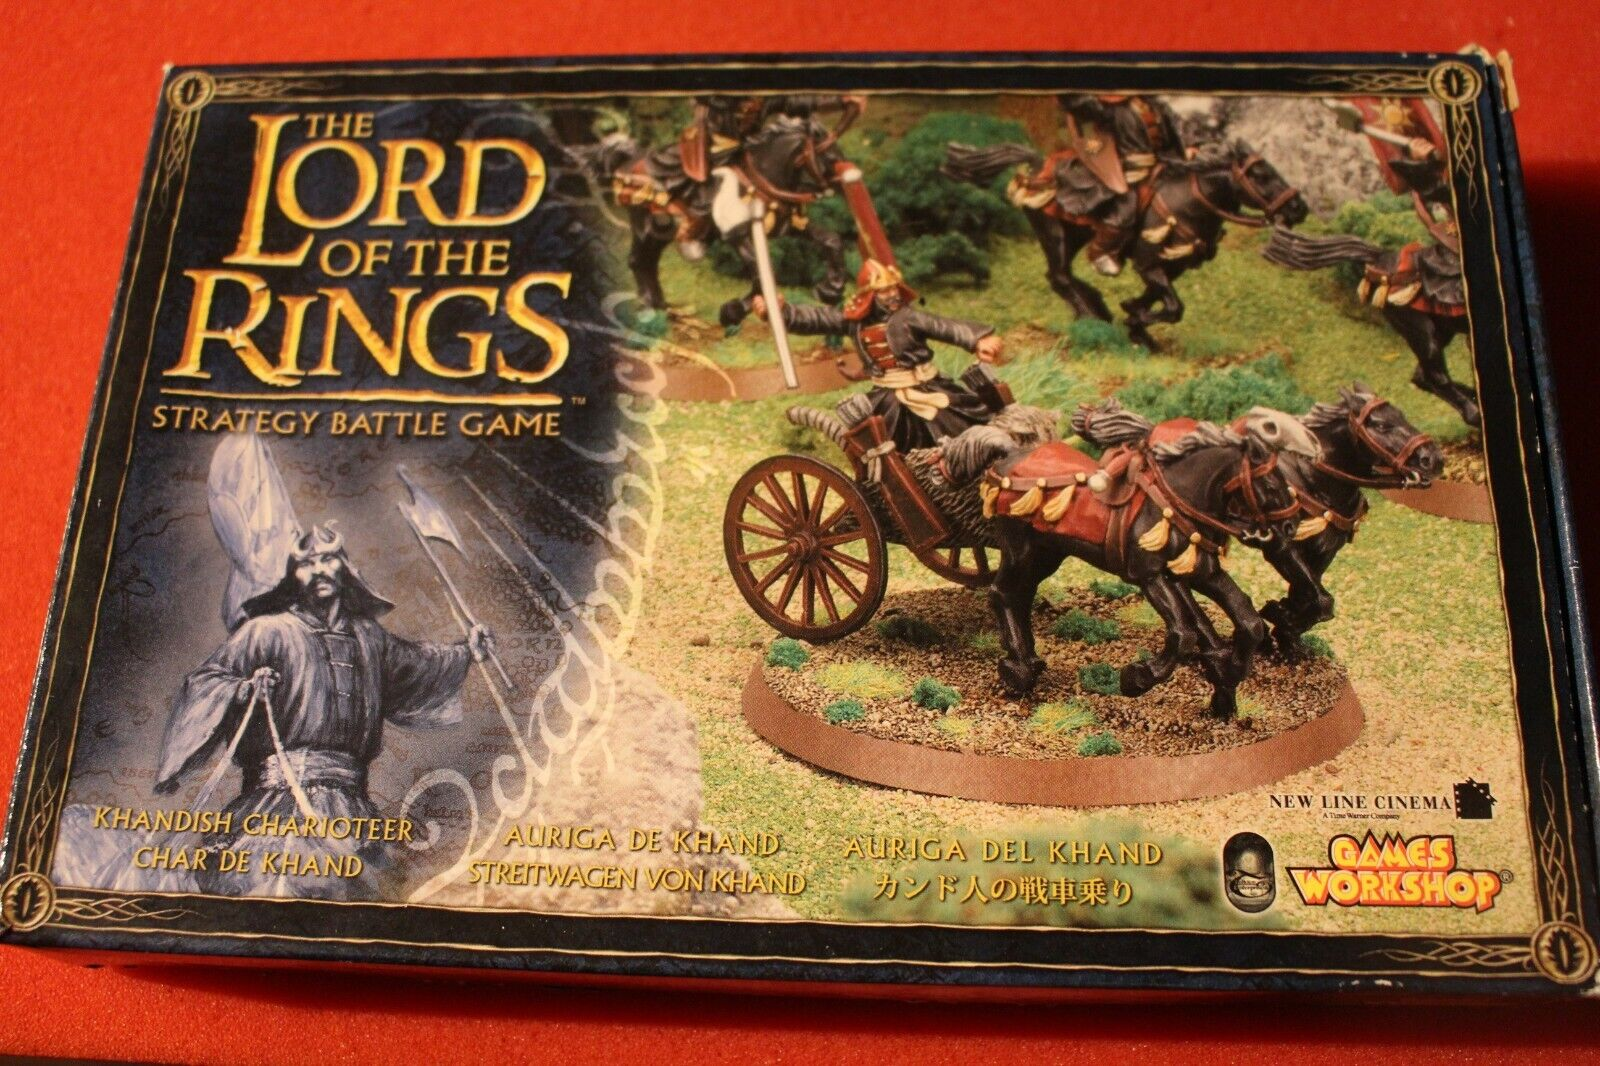 Games Workshop Lord of the Rings Khandish Charioteer Chariot NIB Metal Harad New